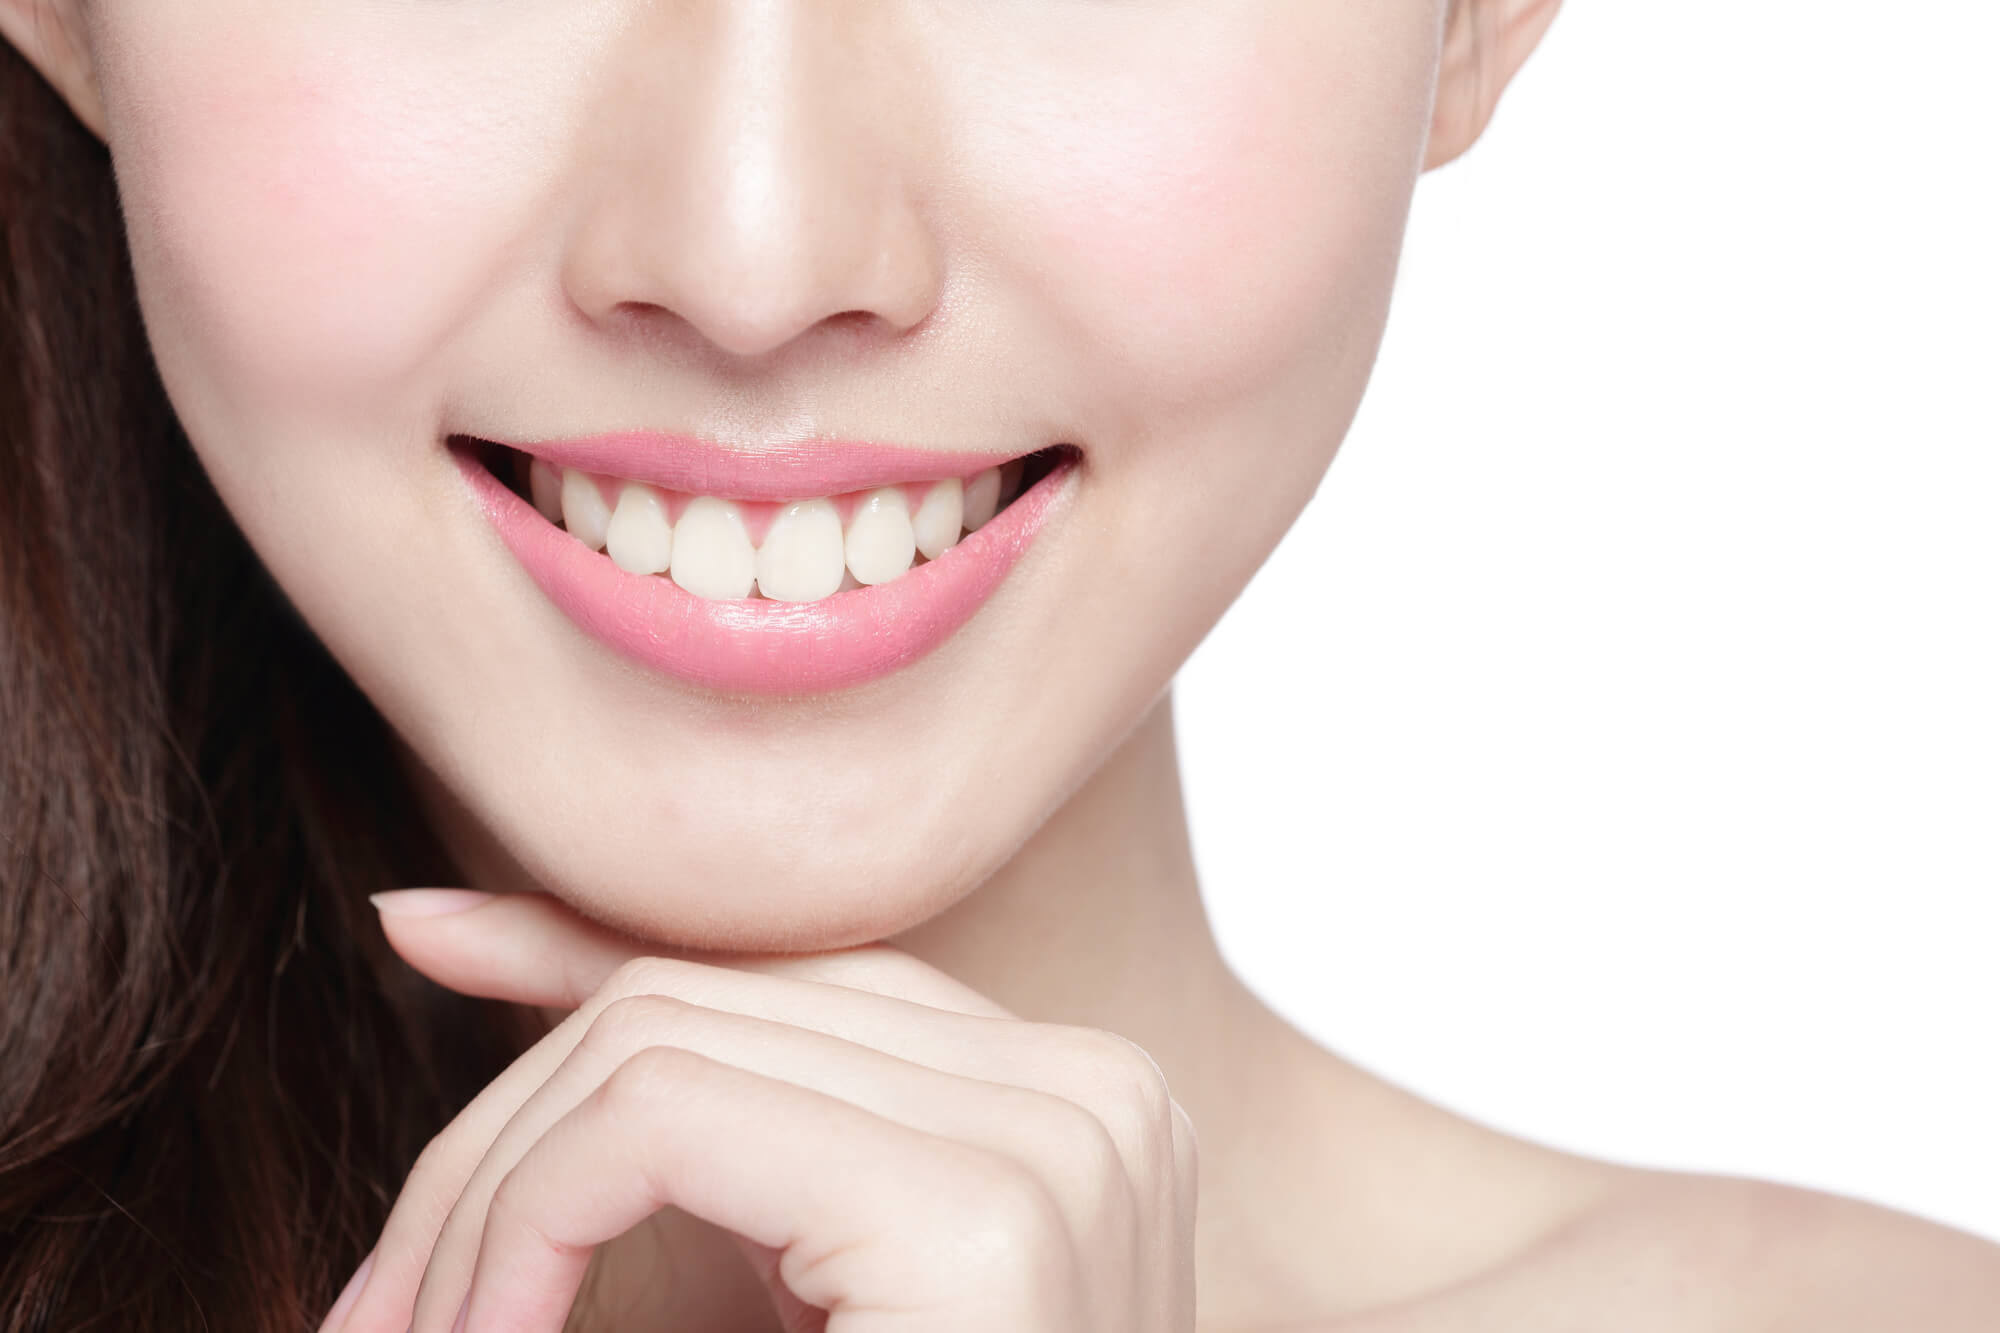 where are the best veneers boynton beach?